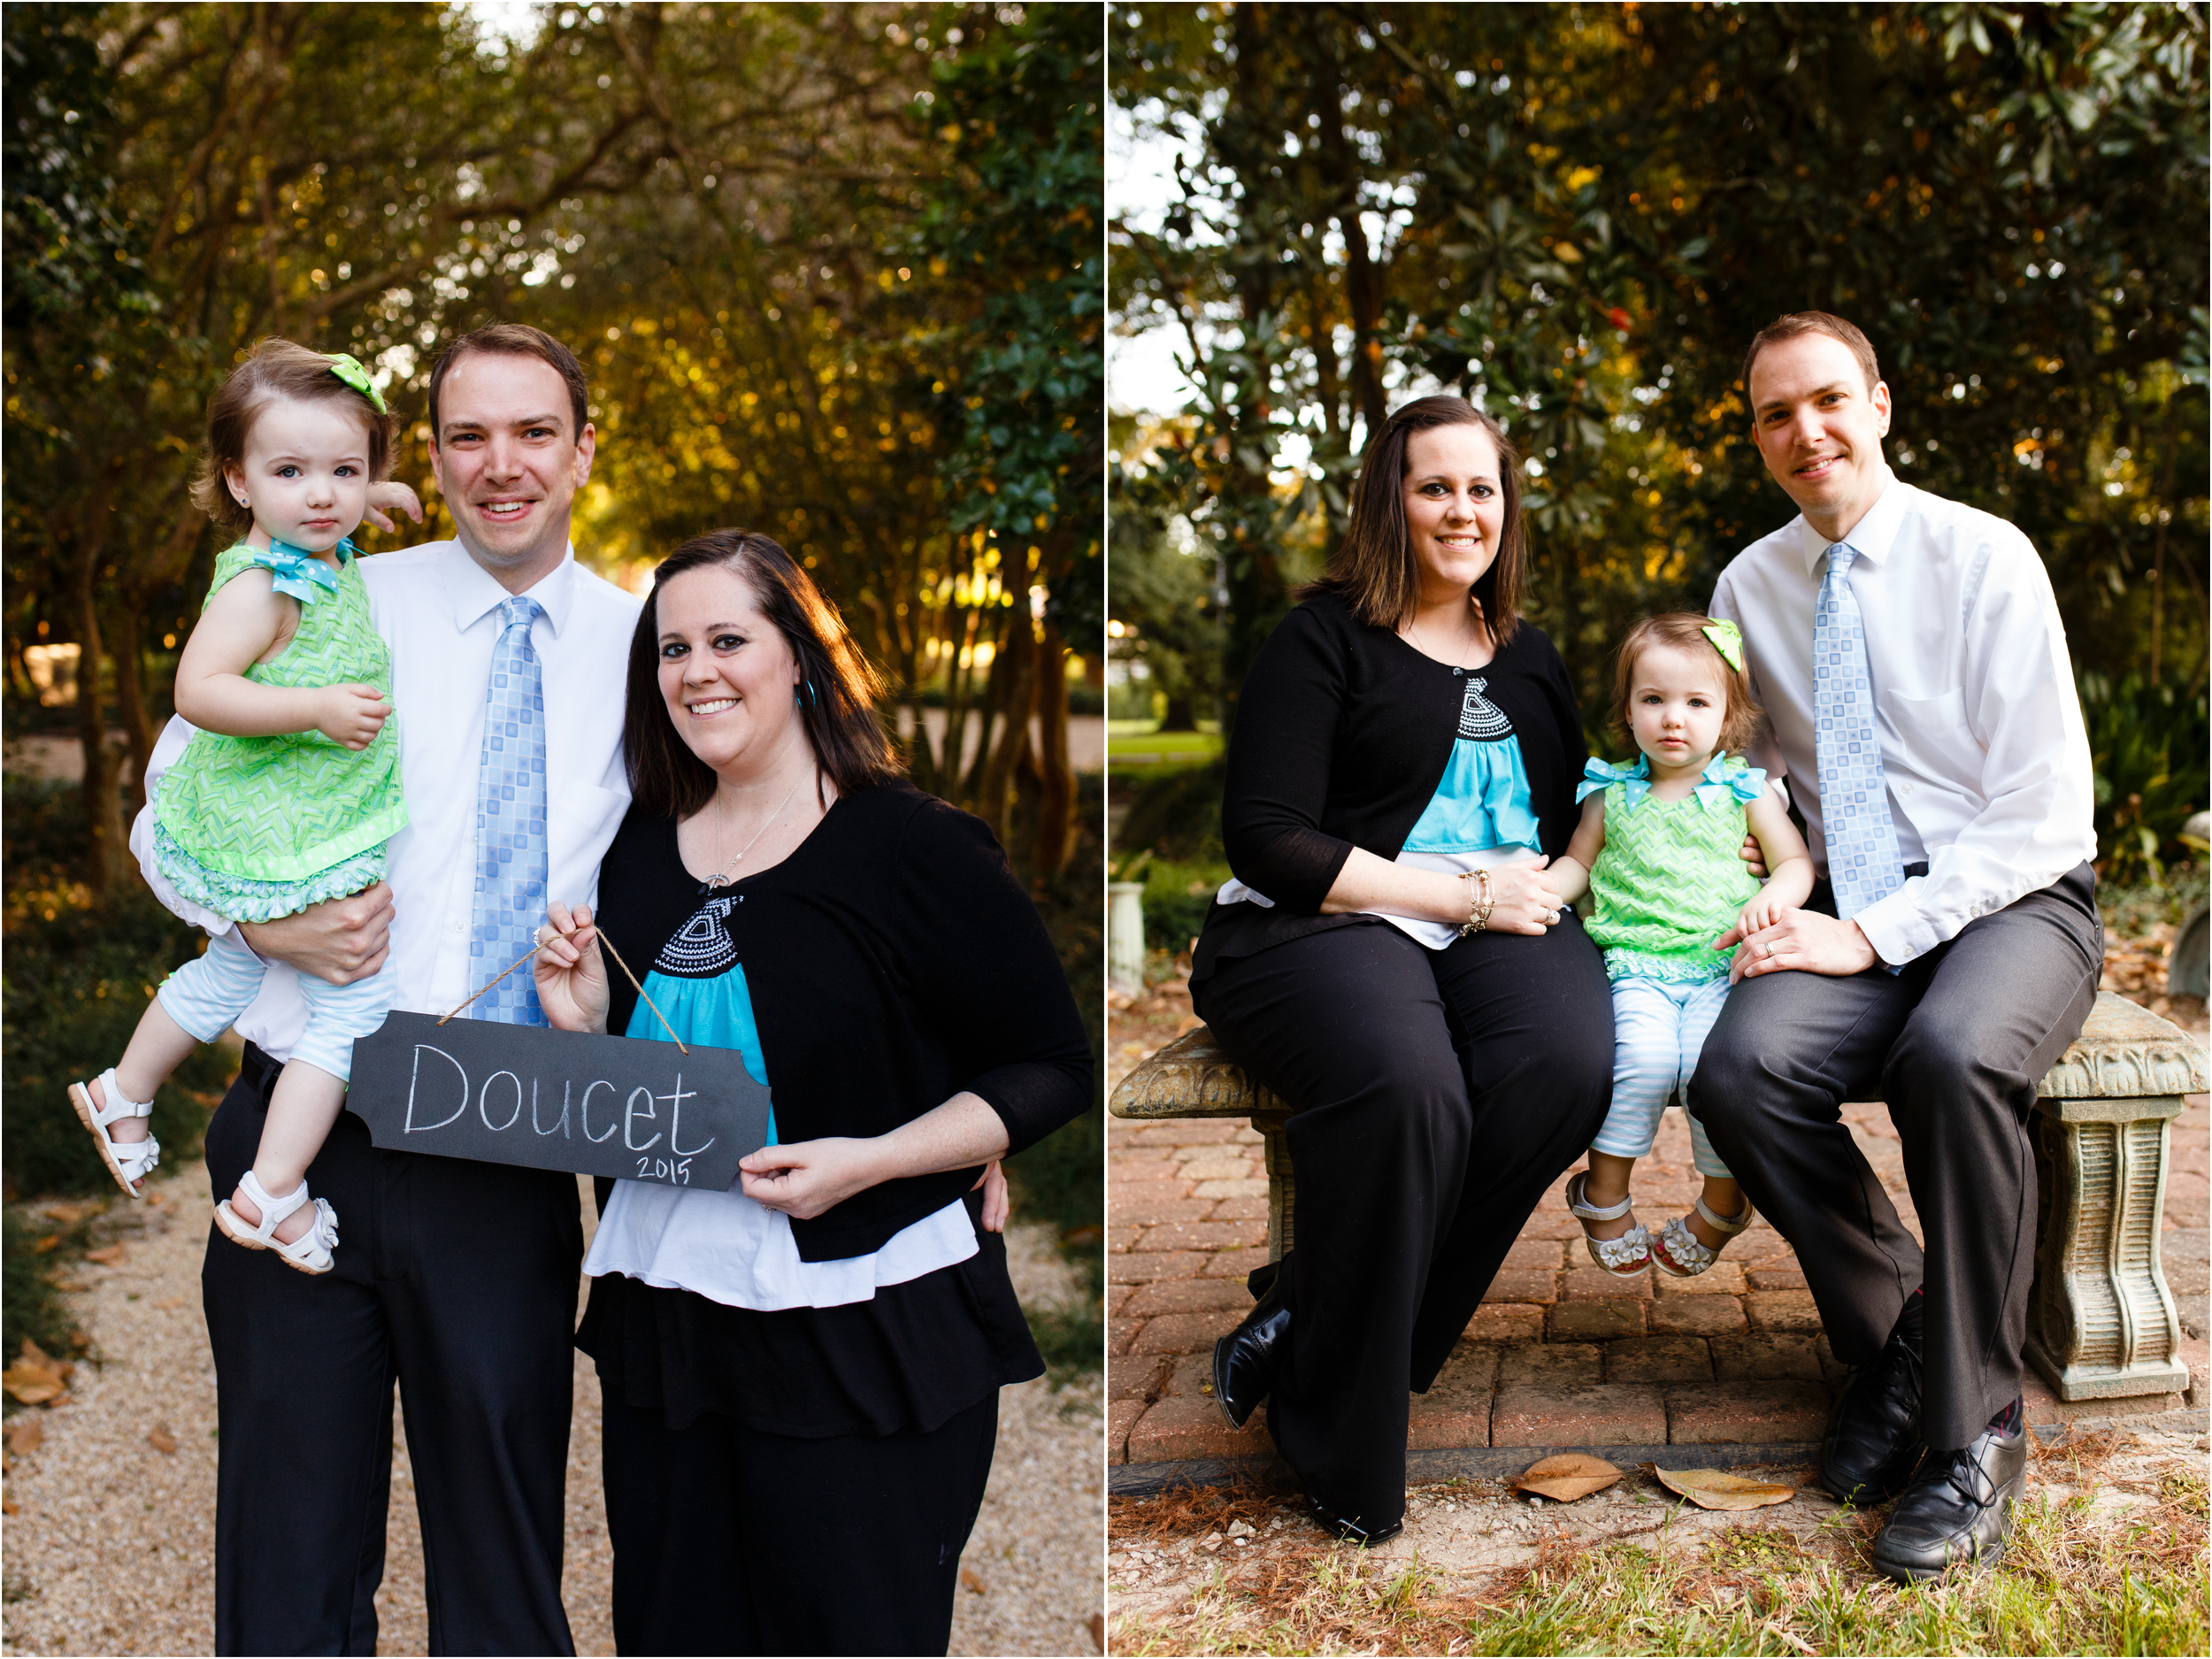 Family-portrait-lafayette-broussard-youngsville-photographer-diptych 8.jpg